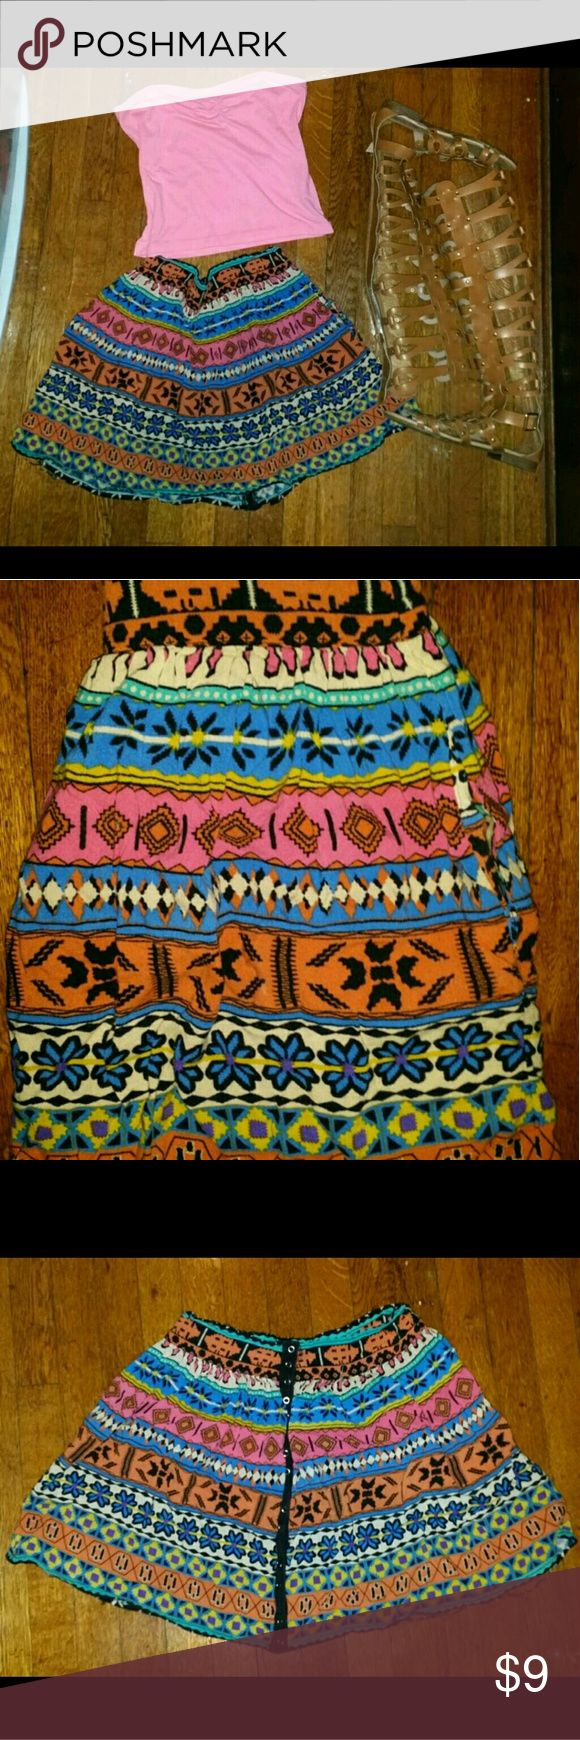 Tribal print skirt ?? This tribal print skirt buttons up in the back (shown in picture) it is my favorite skirt which I can no longer fit ?? had for so many years... there's a small rip on the end of one side of the skirt but it is very unnoticeable! Otherwise this is a very lightweight skirt and is perfect for the up coming summer season!! Message me if you have any questions I reply back fast and I am open to deals. Enjoy my closet ?? Forever 21 Skirts Circle & Skater